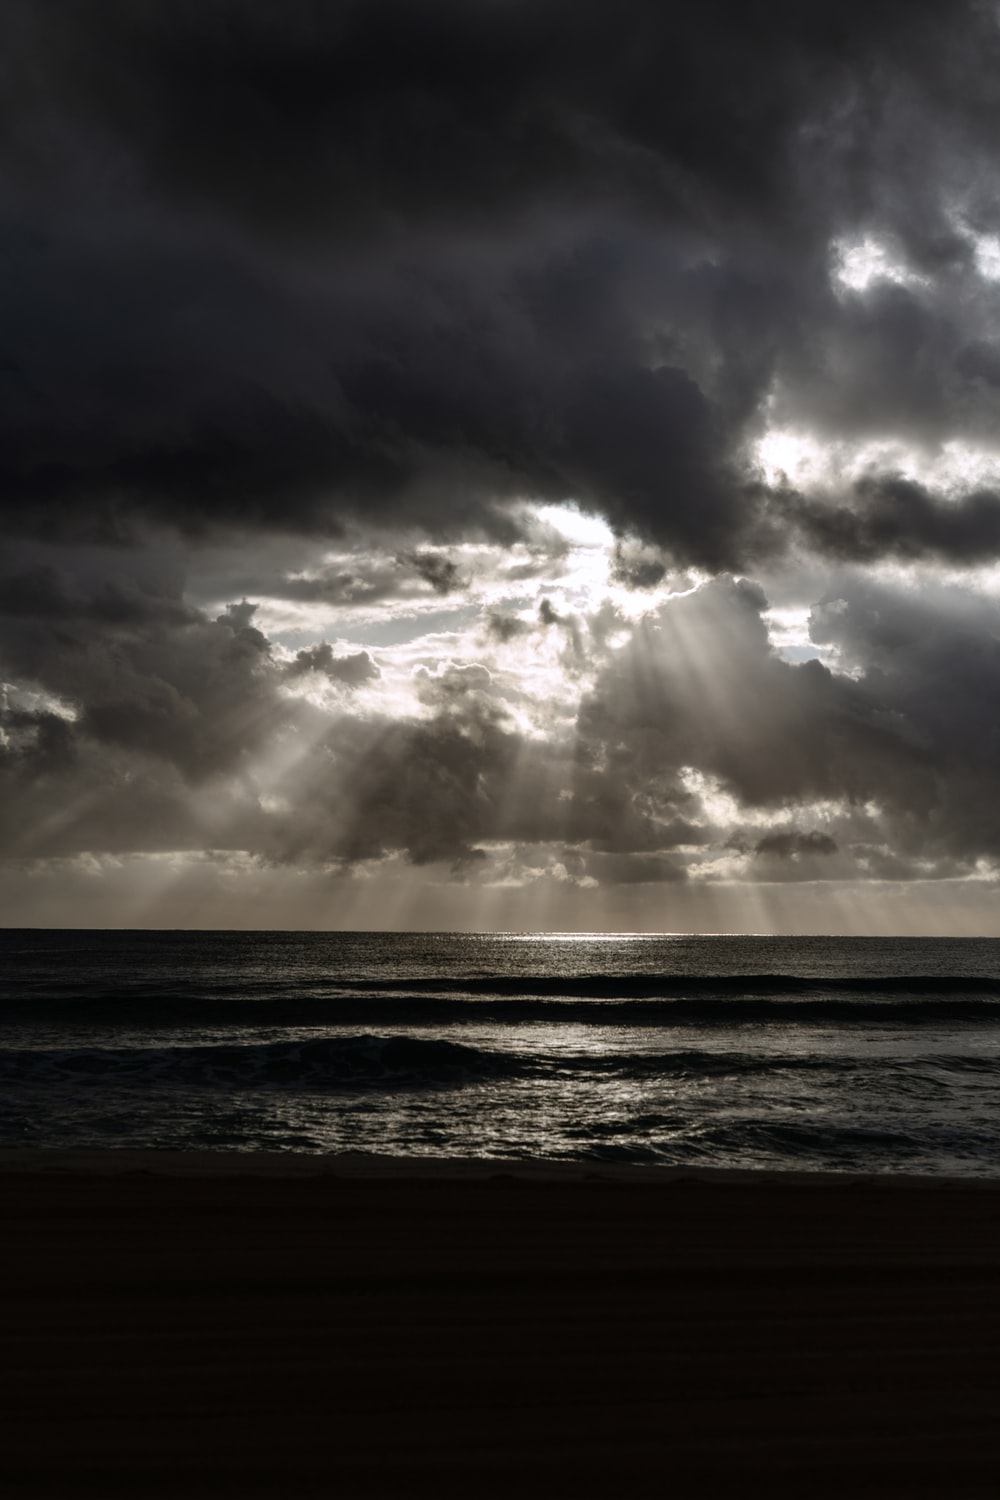 ocean under cloudy sky during daytime